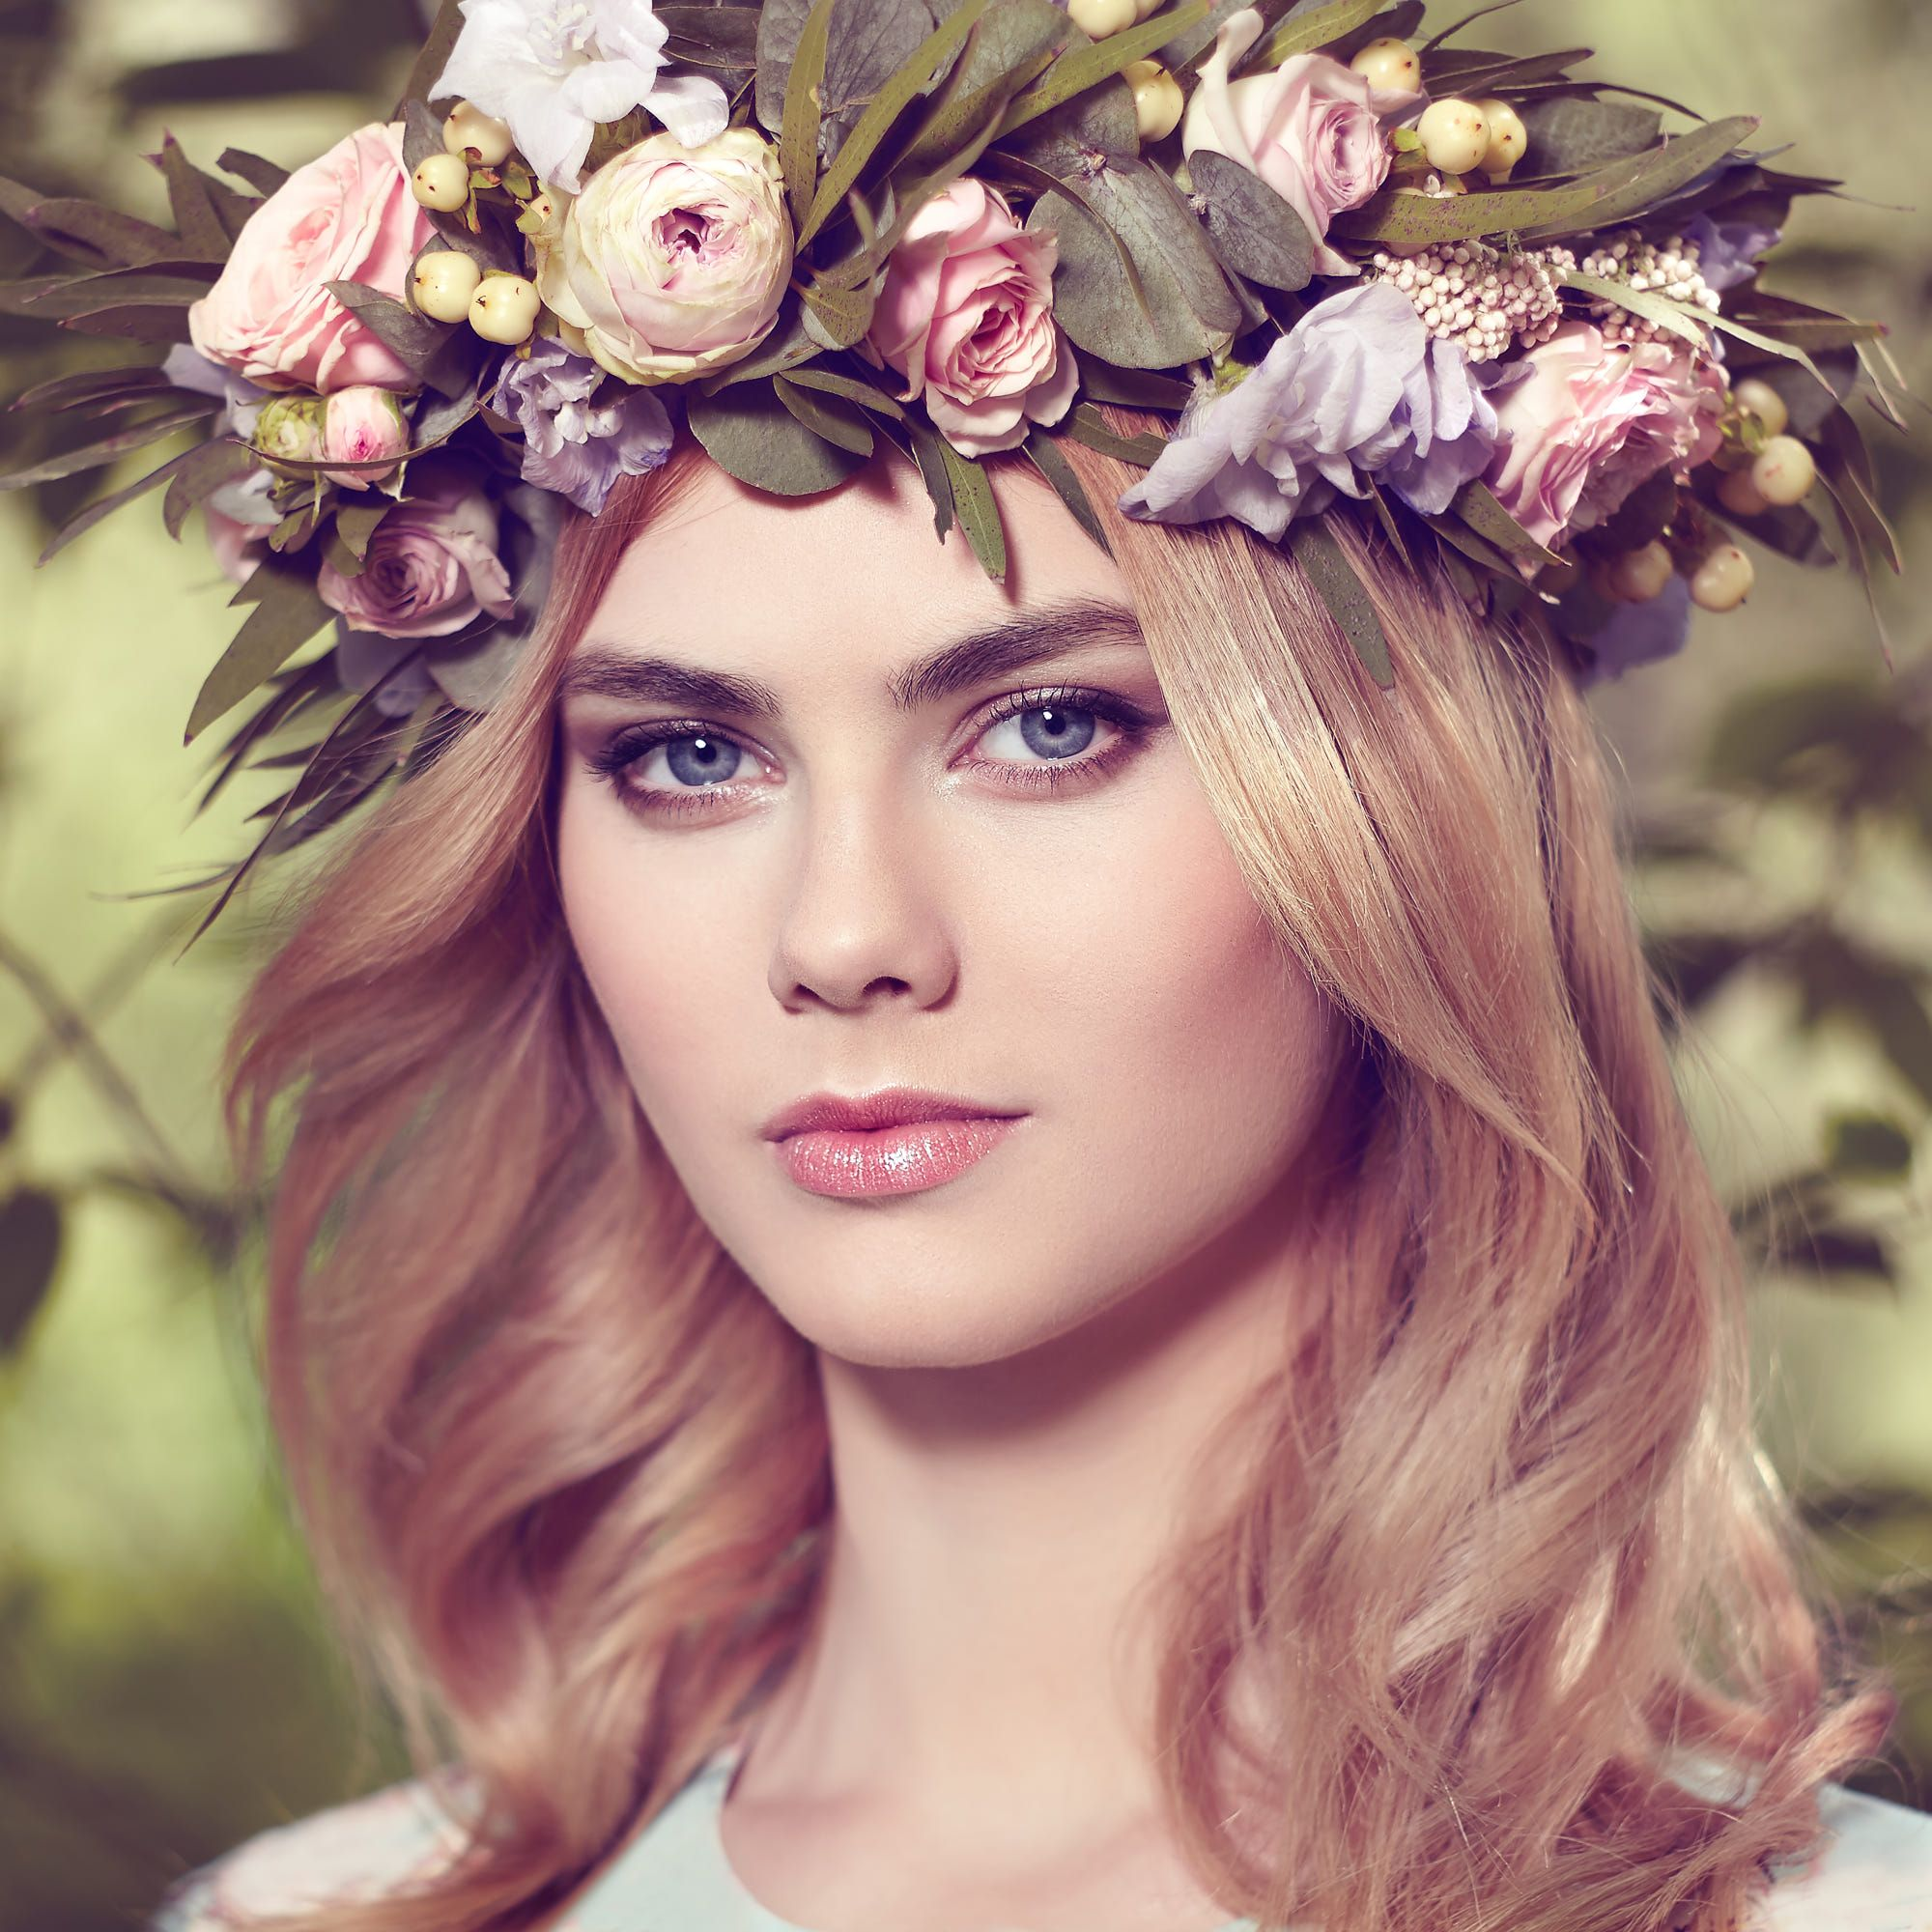 Beautiful blonde woman with flower wreath on her head beauty girl beautiful blonde woman with flower wreath on her head beauty girl with flowers hairstyle izmirmasajfo